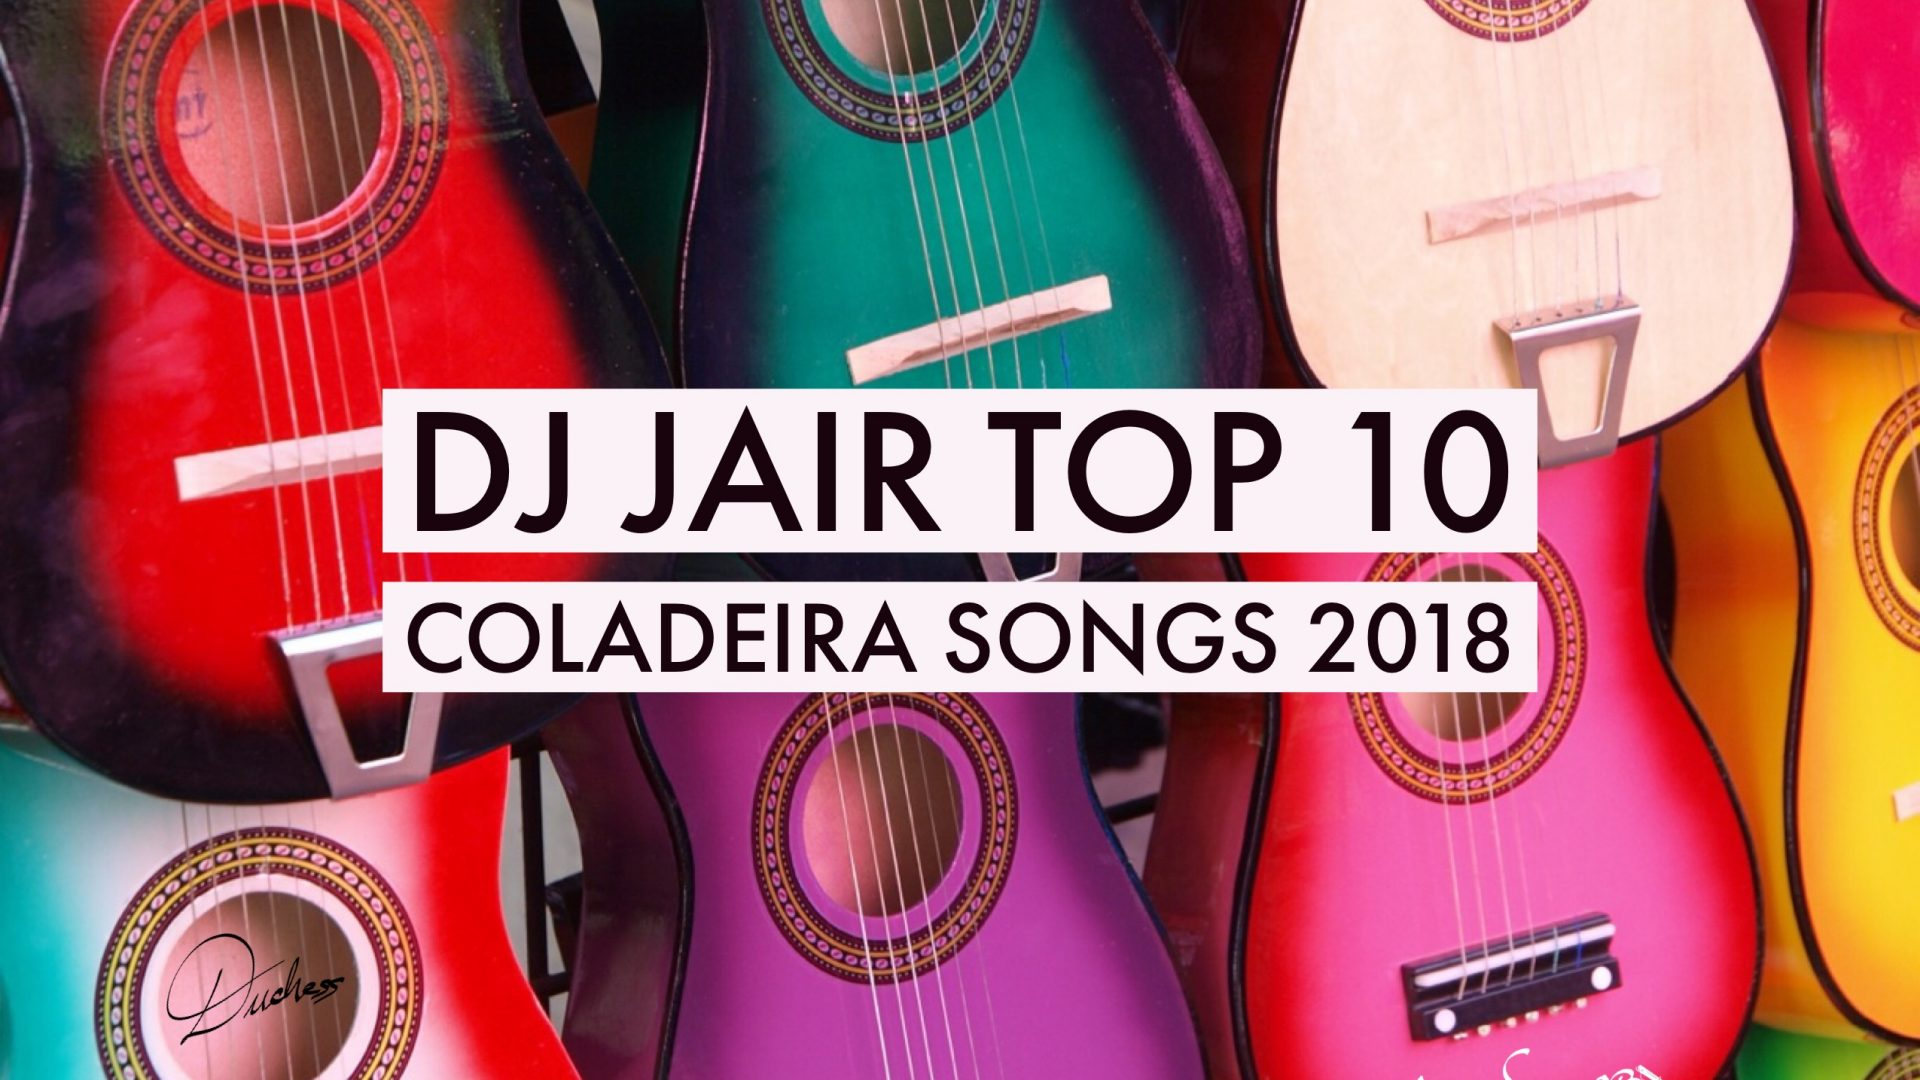 DJ JAIR'S TOP 10 COLADEIRA SONGS OF 2018